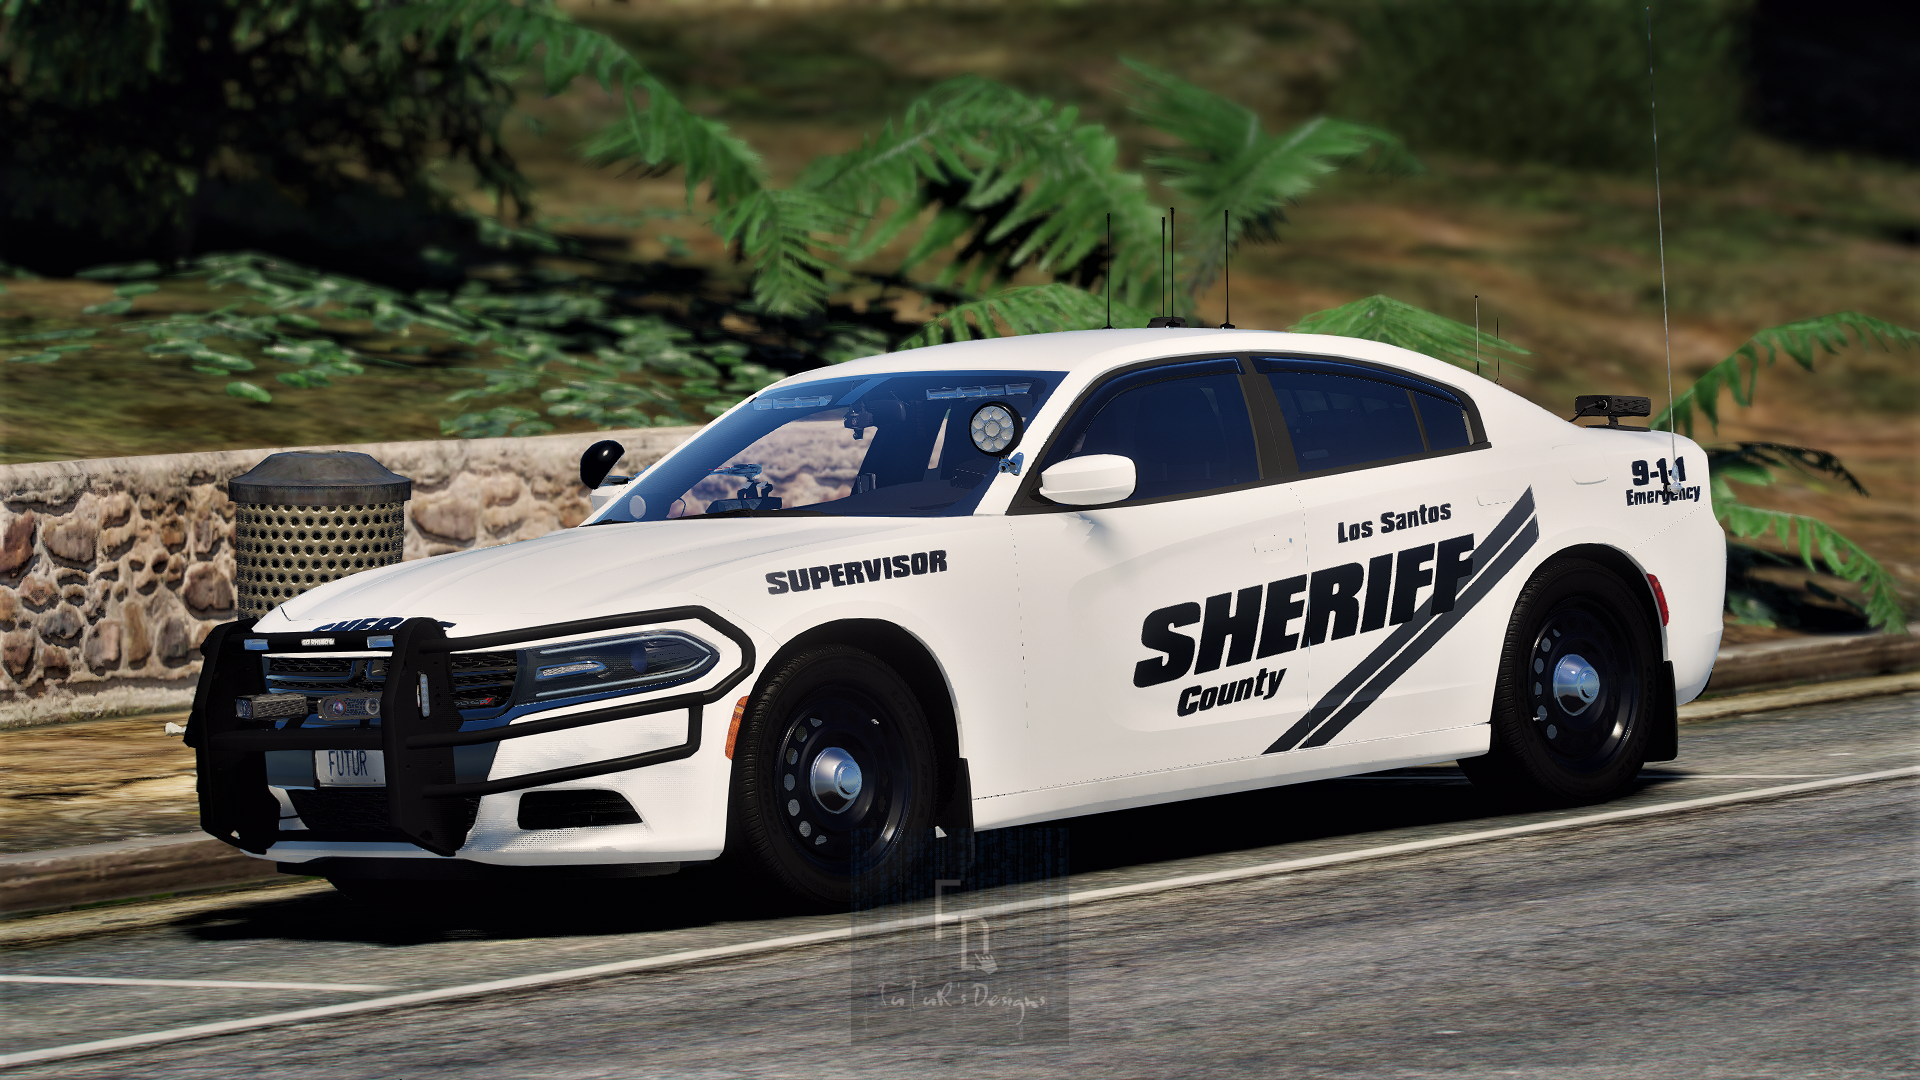 Grand_Theft_Auto_V_10_09_2021_16_42_42.png